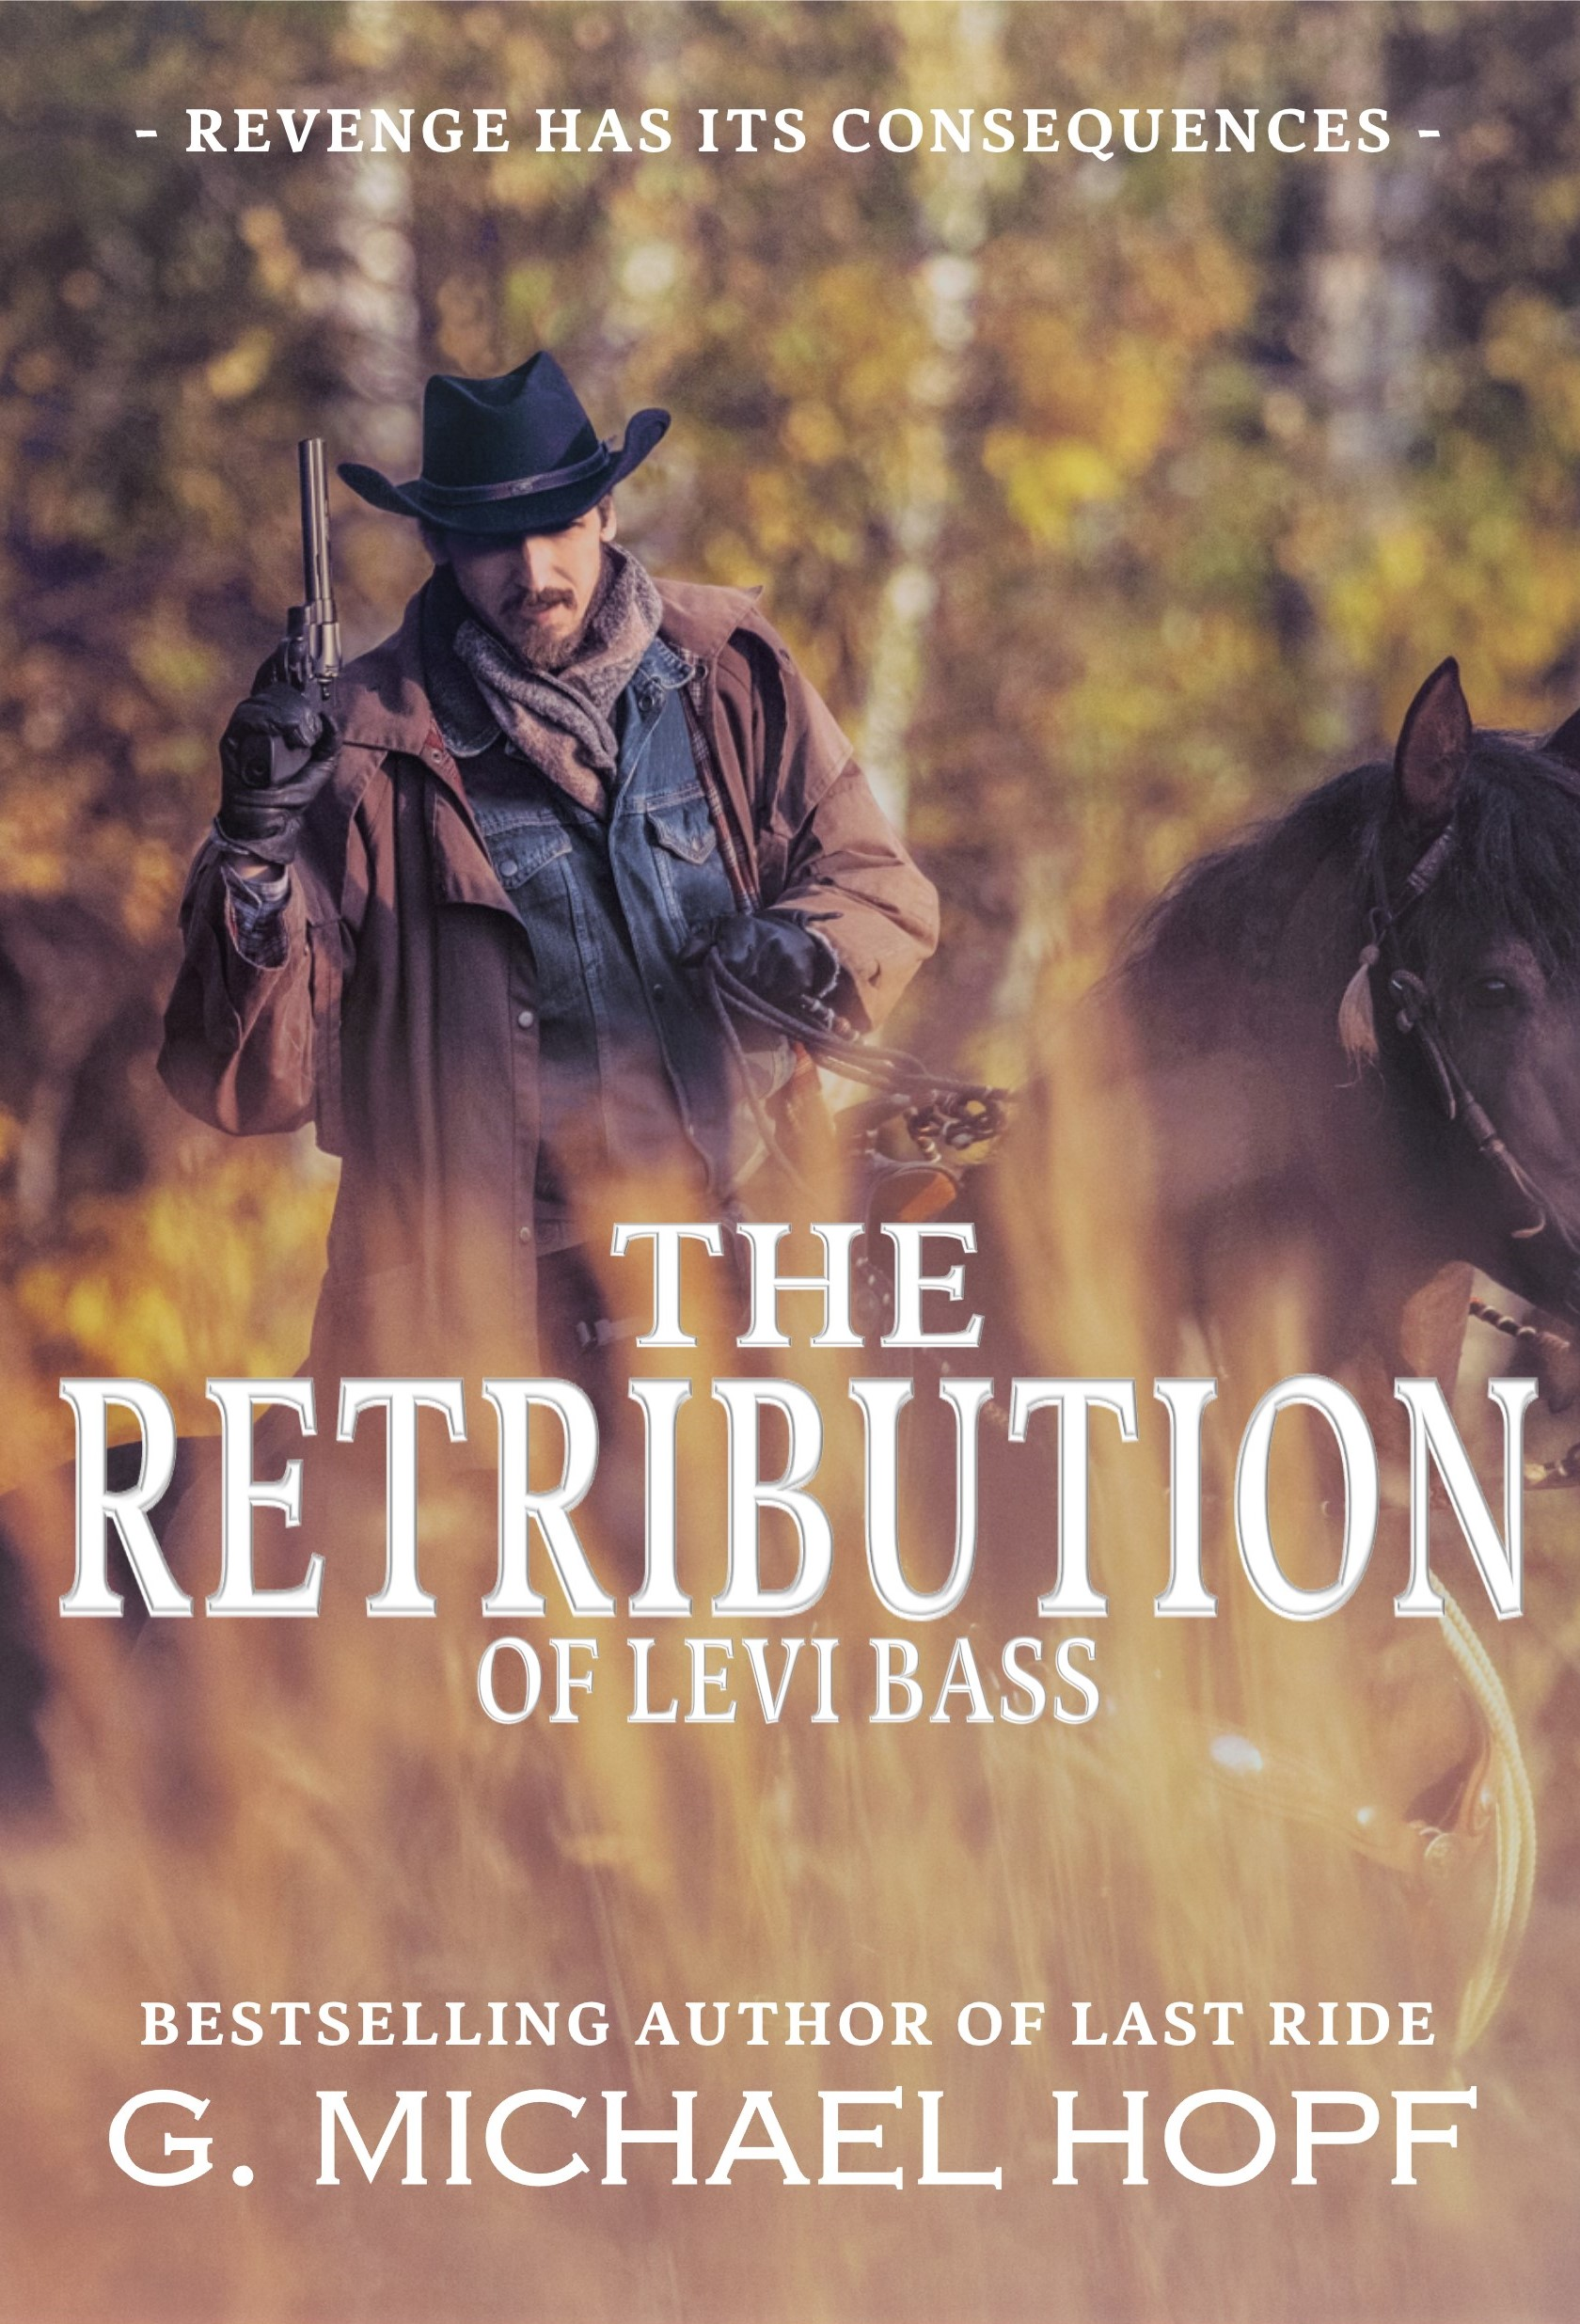 THE RETRIBUTION OF LEVI BASS COVER